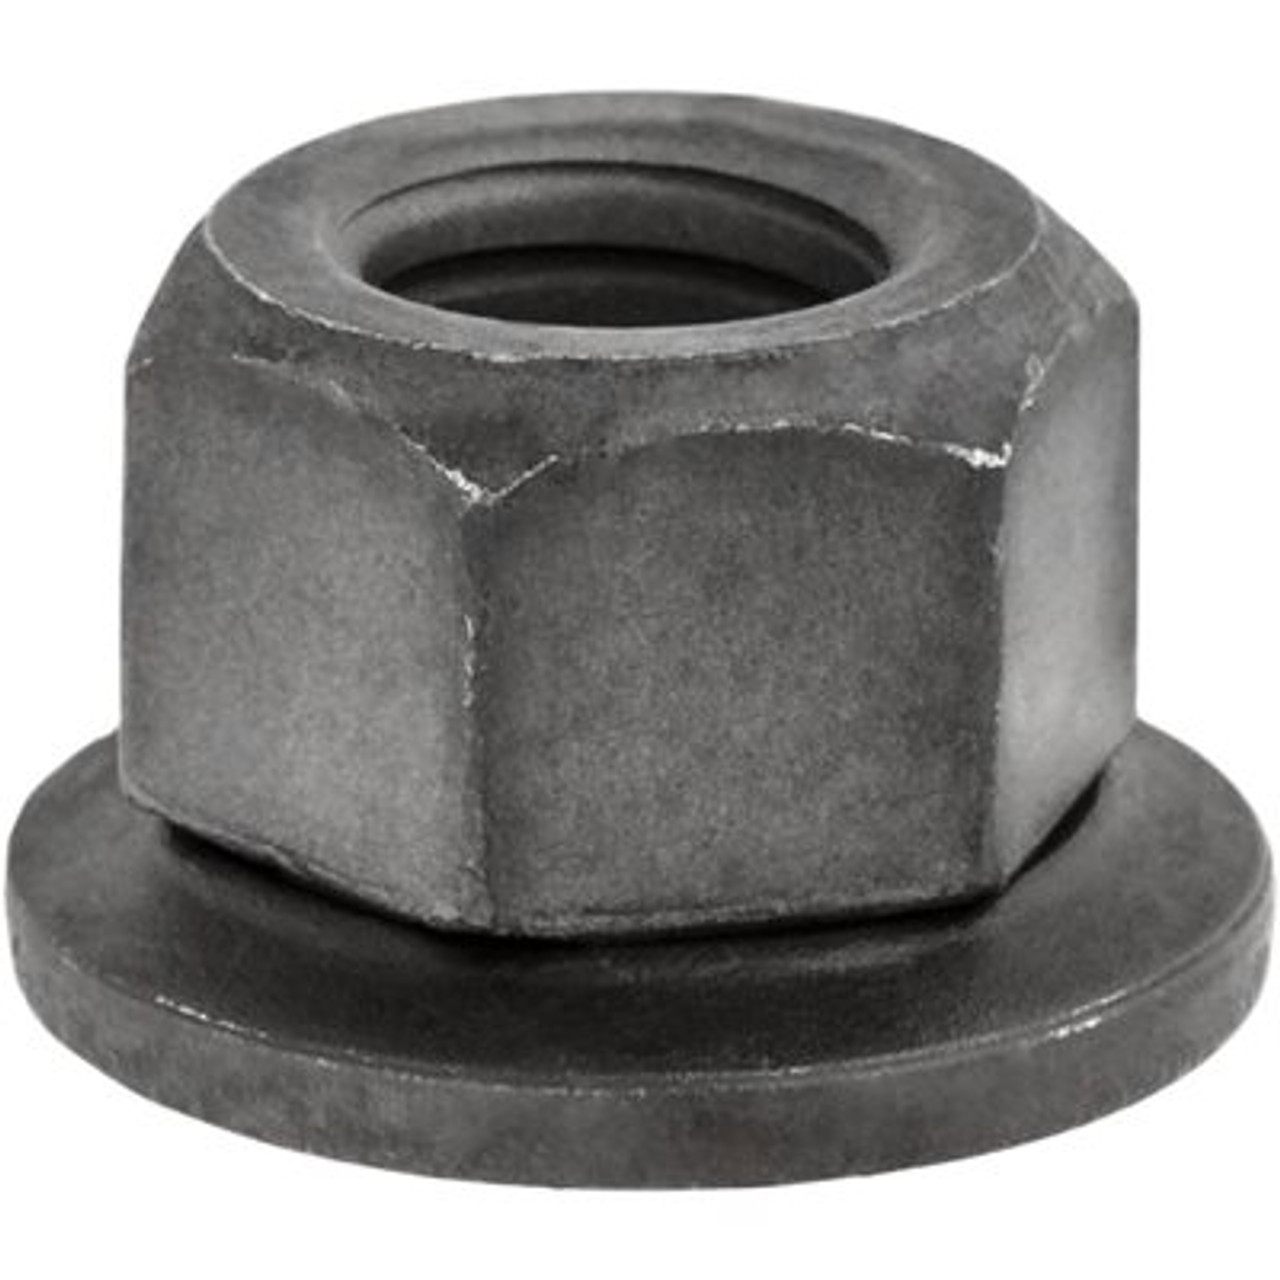 Screw Size : M8-1.25 Across Flats : 13MM Overall Height : 10MM Washer Diameter : 18MM Finish : Phosphate OEM: 6100050 Pcs/Unit: 25 Per Box Country: US Catalog Page #: 139